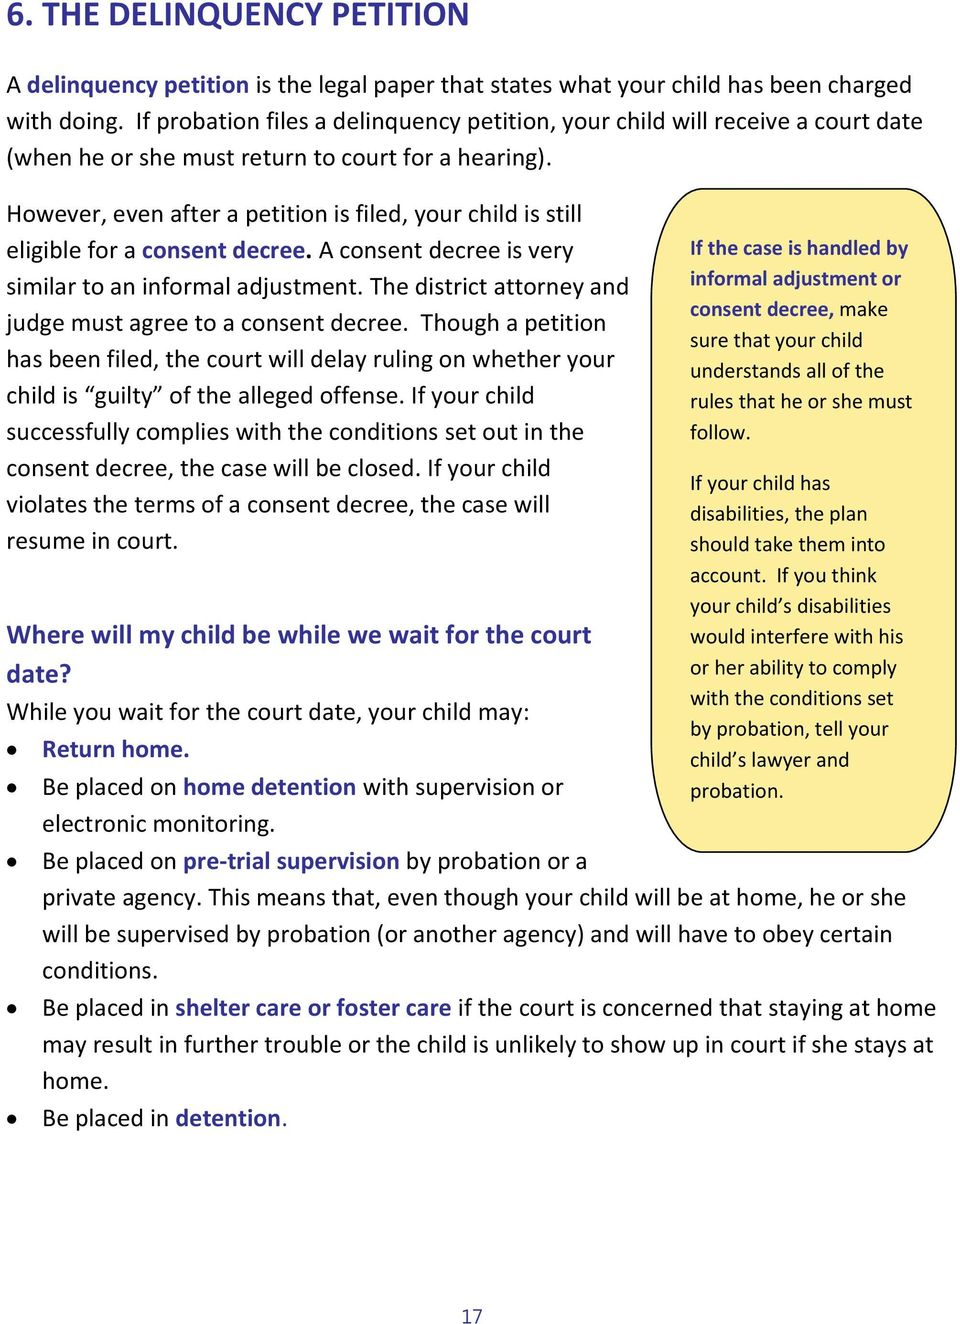 However, even after a petition is filed, your child is still eligible for a consent decree. A consent decree is very similar to an informal adjustment.